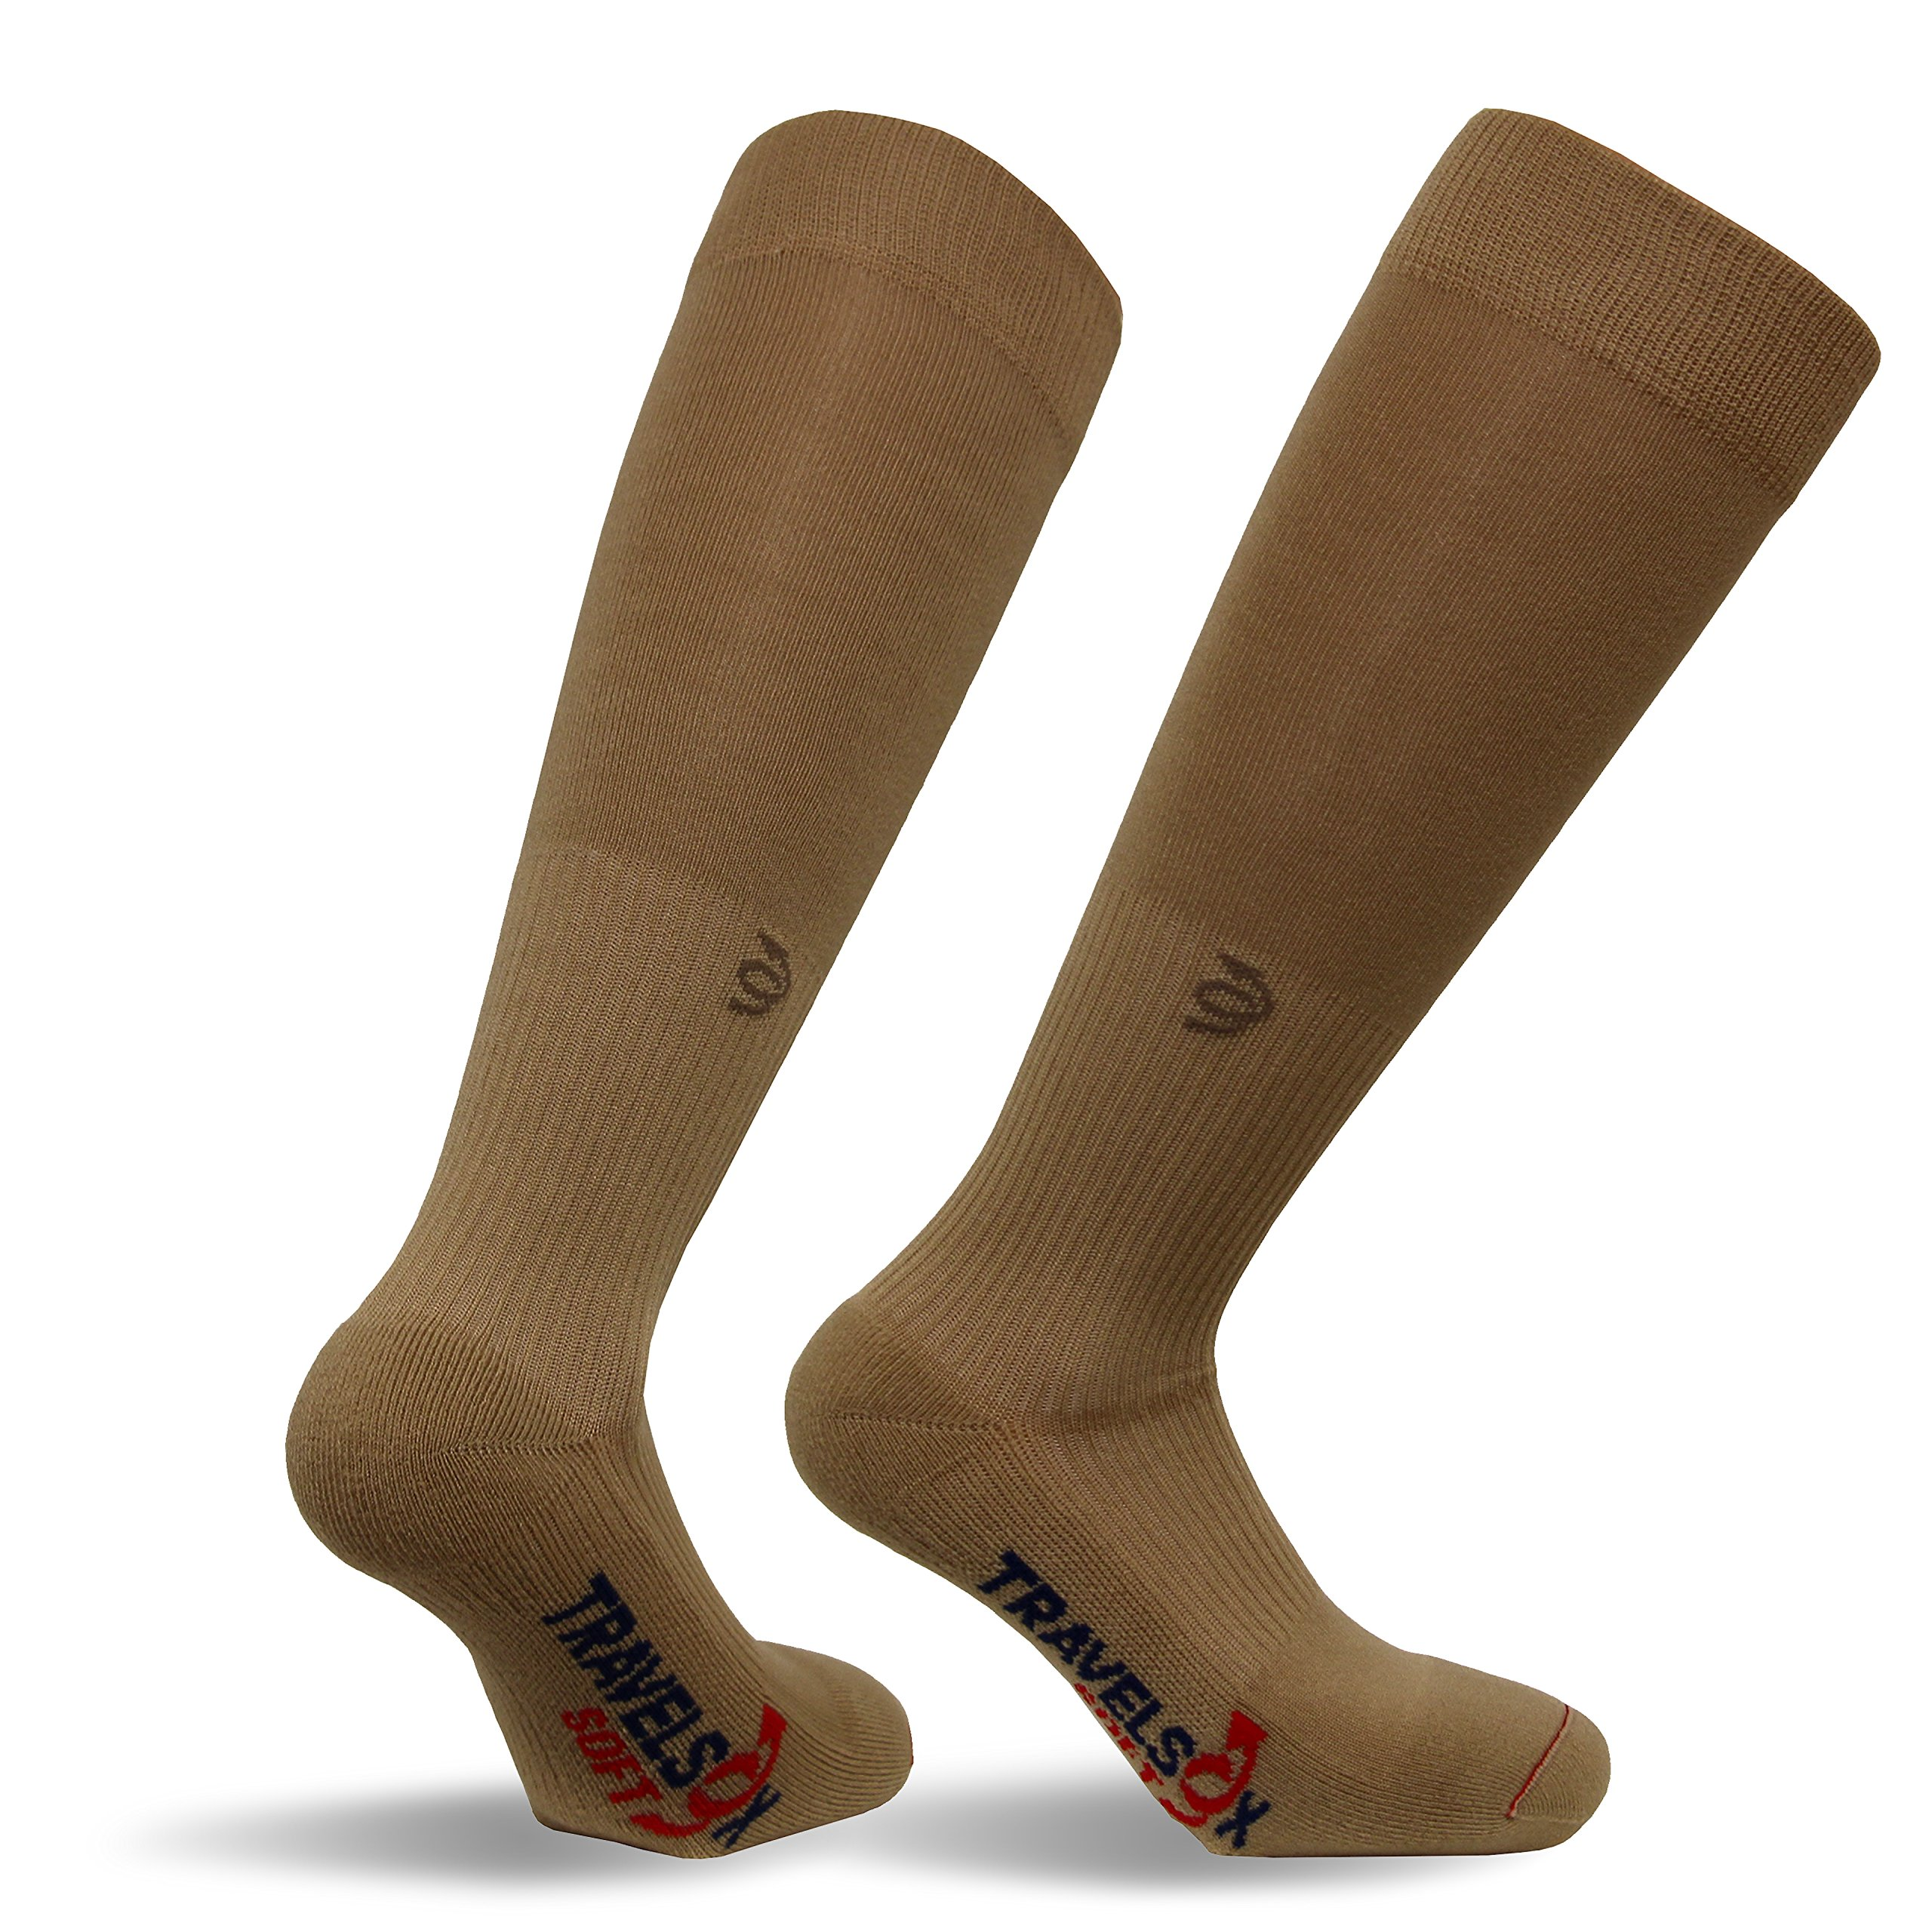 Travelsox OTC Travelsoft Graduated Compression Socks with Silver DryStat TSS 6000 Khaki, Large by Vitalsox